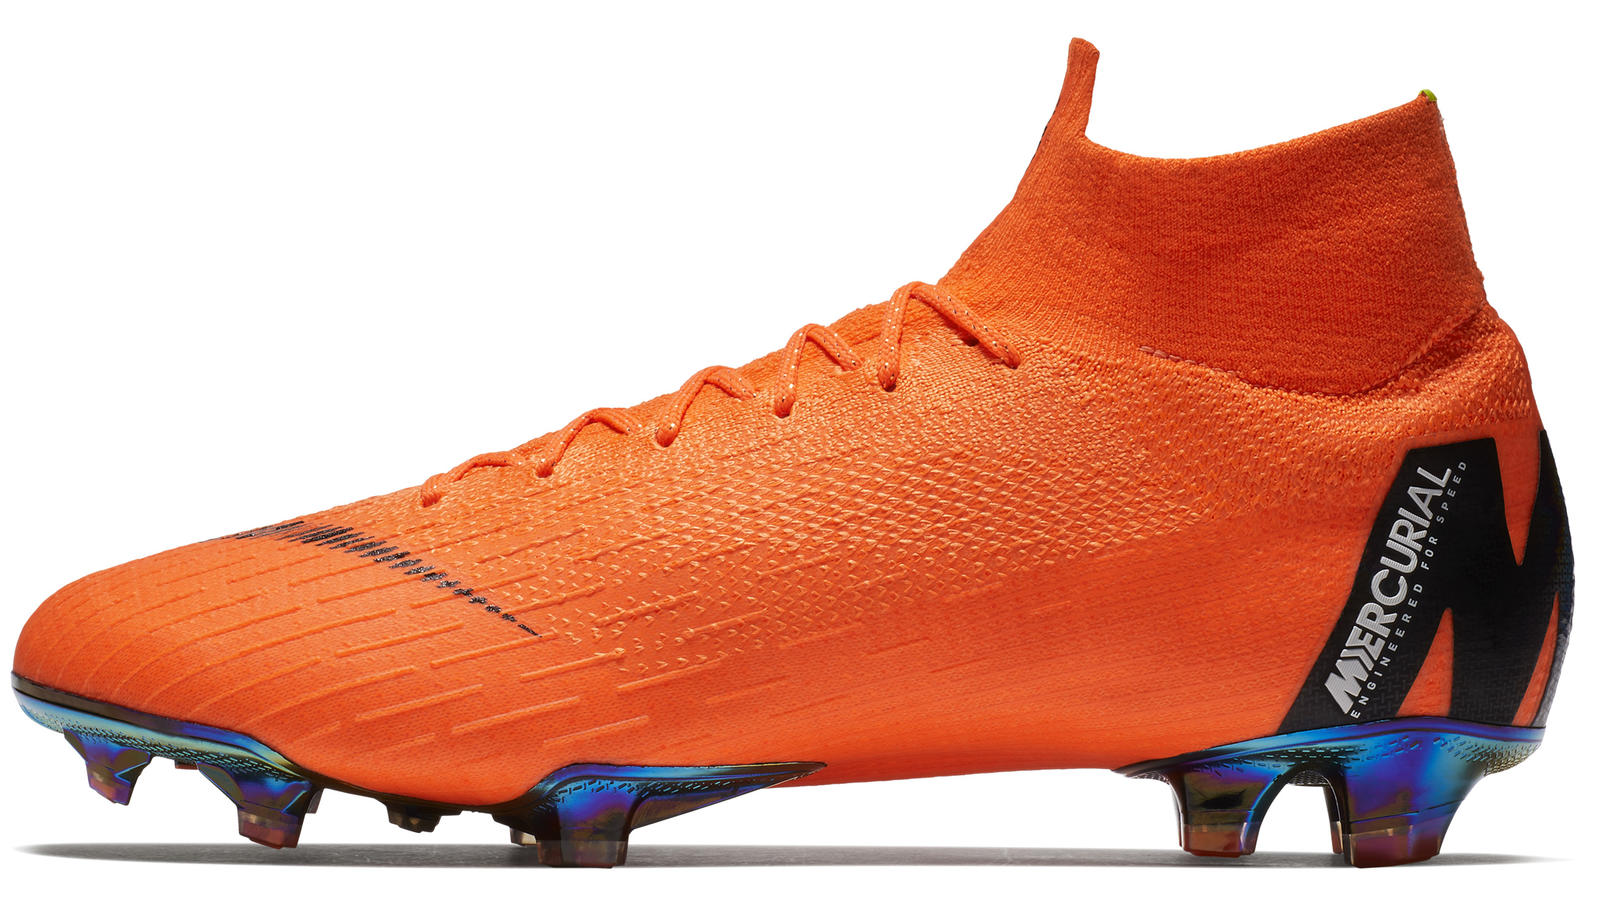 Nike Football Launches the 2018 Mercurial Superfly and Vapor 360 ... c9fc7d2b3